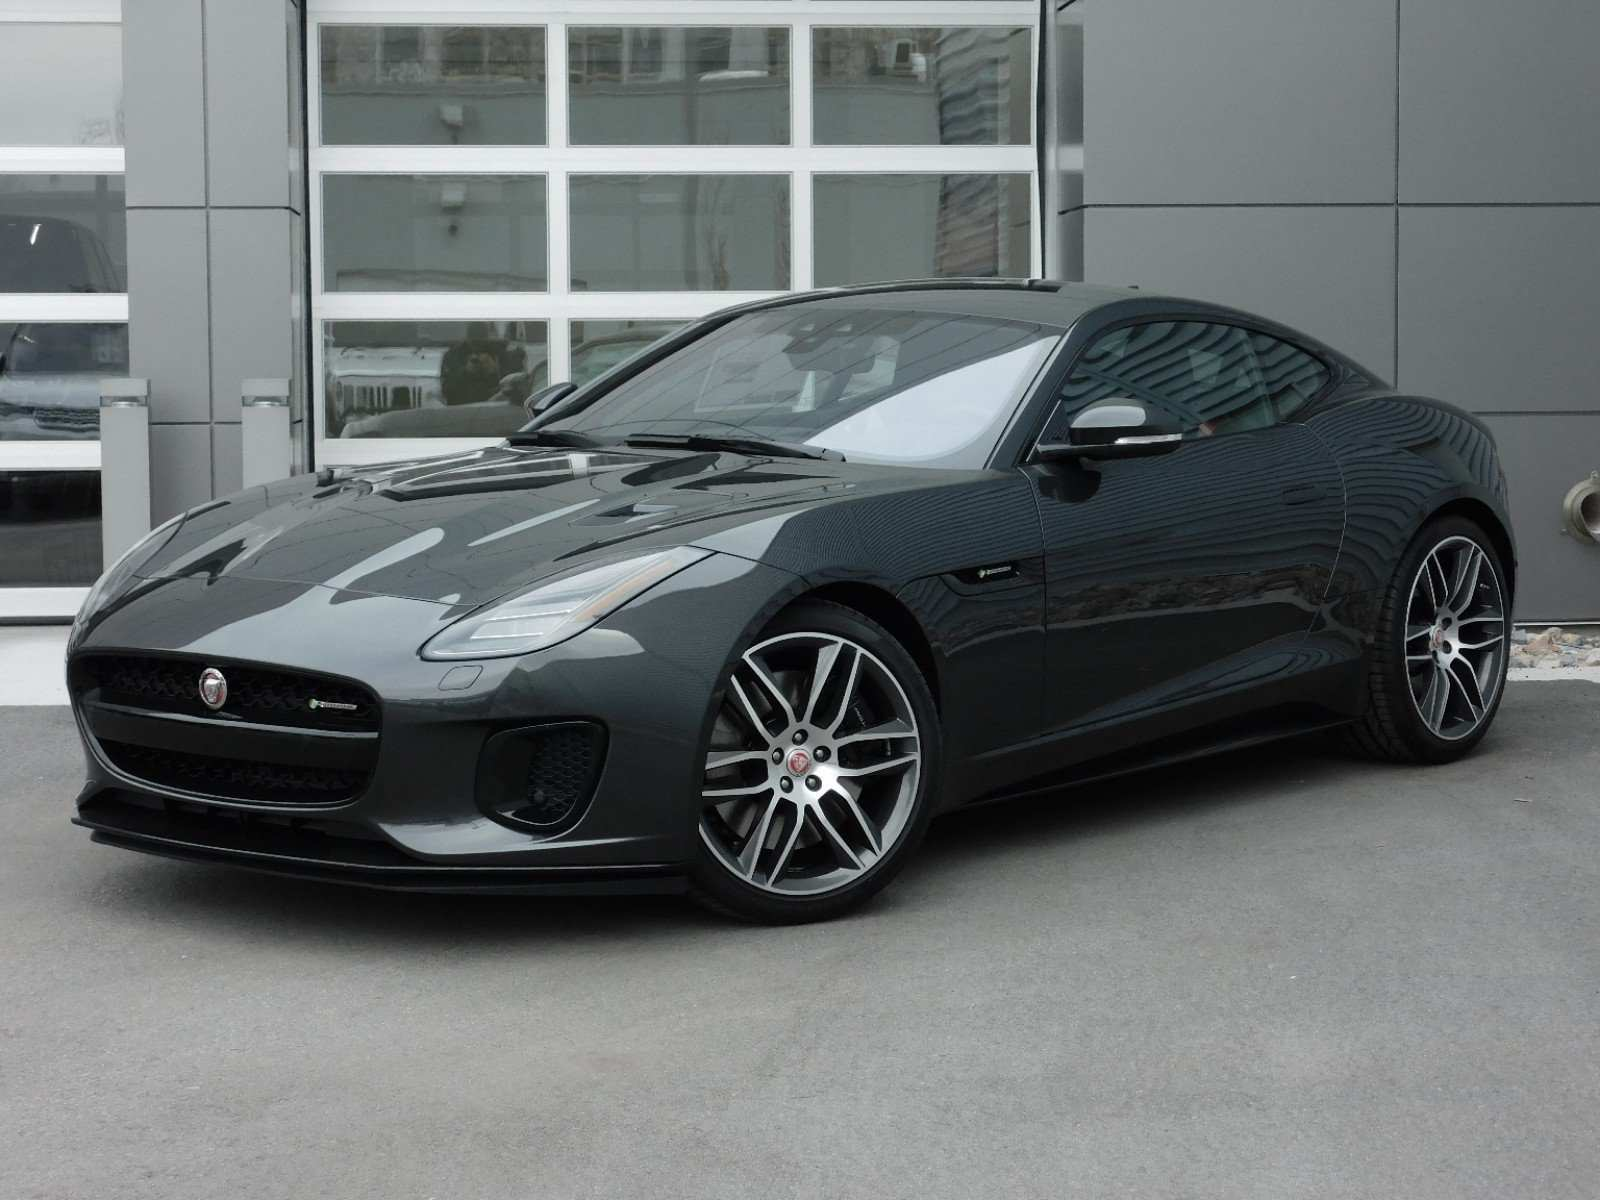 16 New 2020 Jaguar F Type Price Release Date And Concept